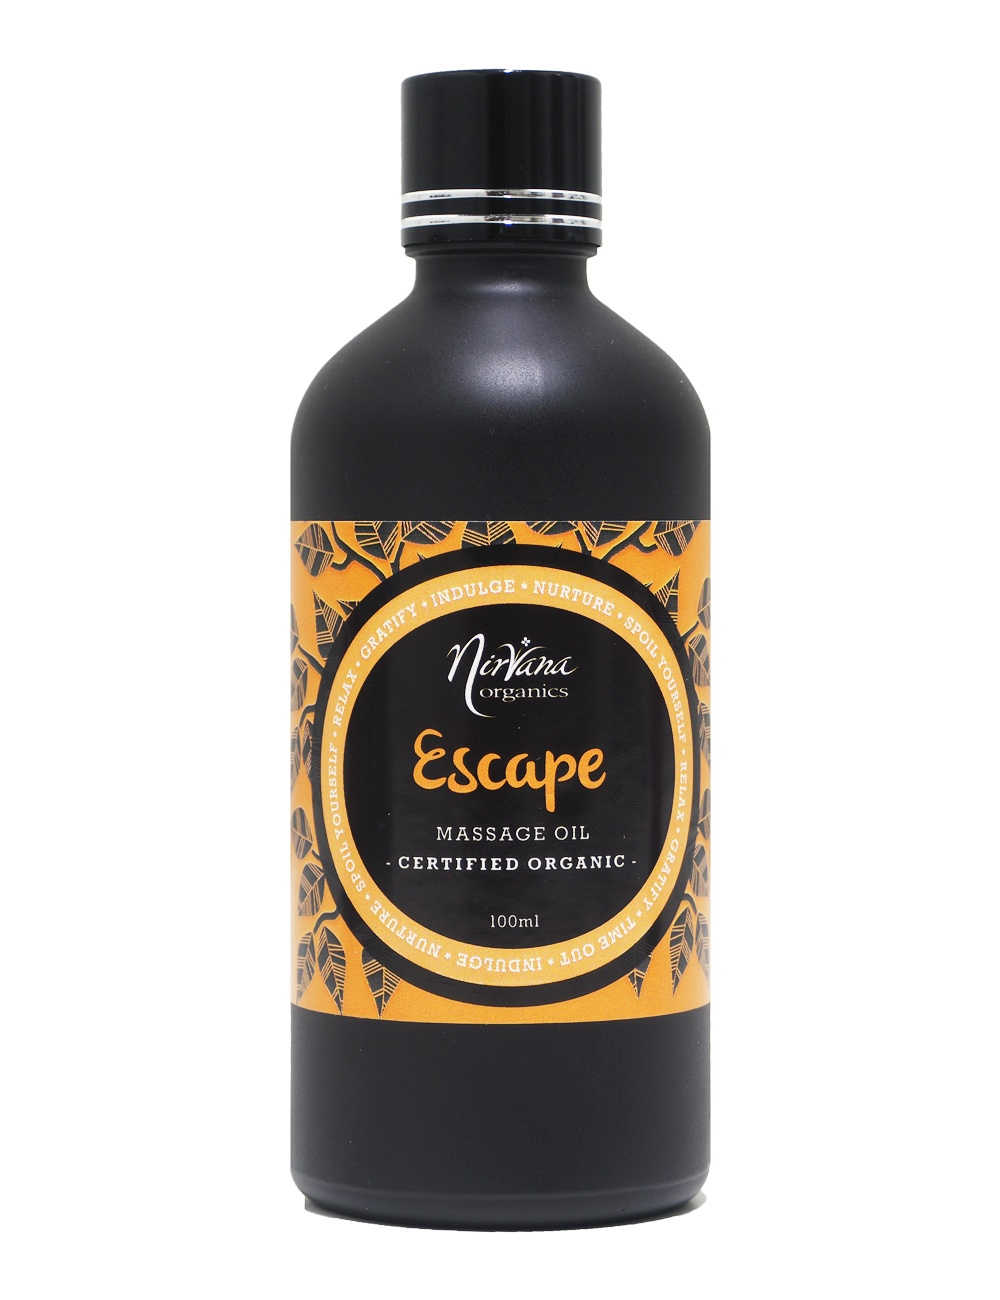 Aromatherapy Massage Oil - Escape Blend